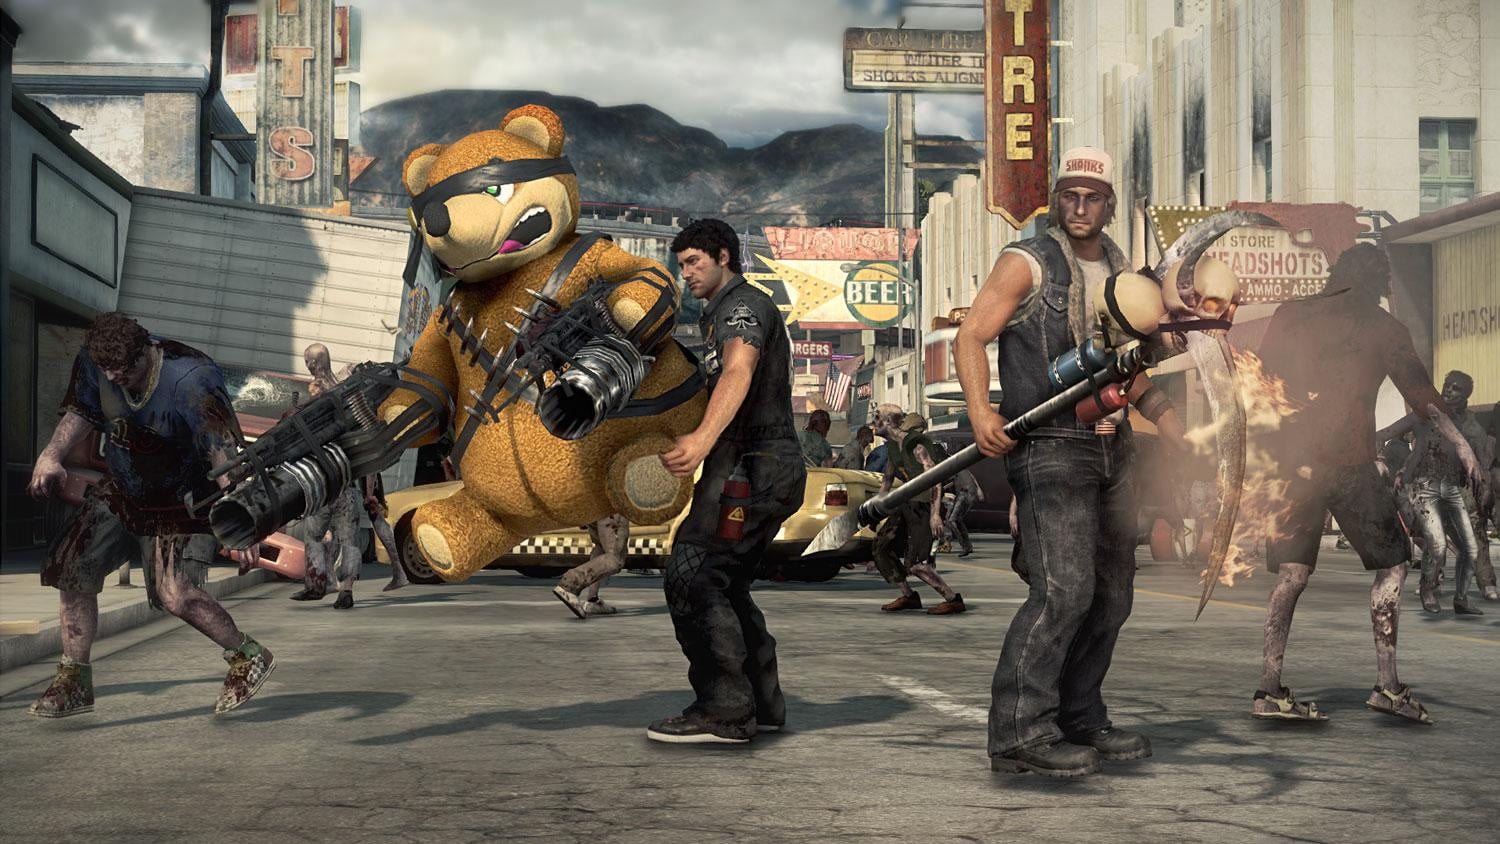 Dead rising 3 review digital trends dead rising 3 screenshot 23 malvernweather Images